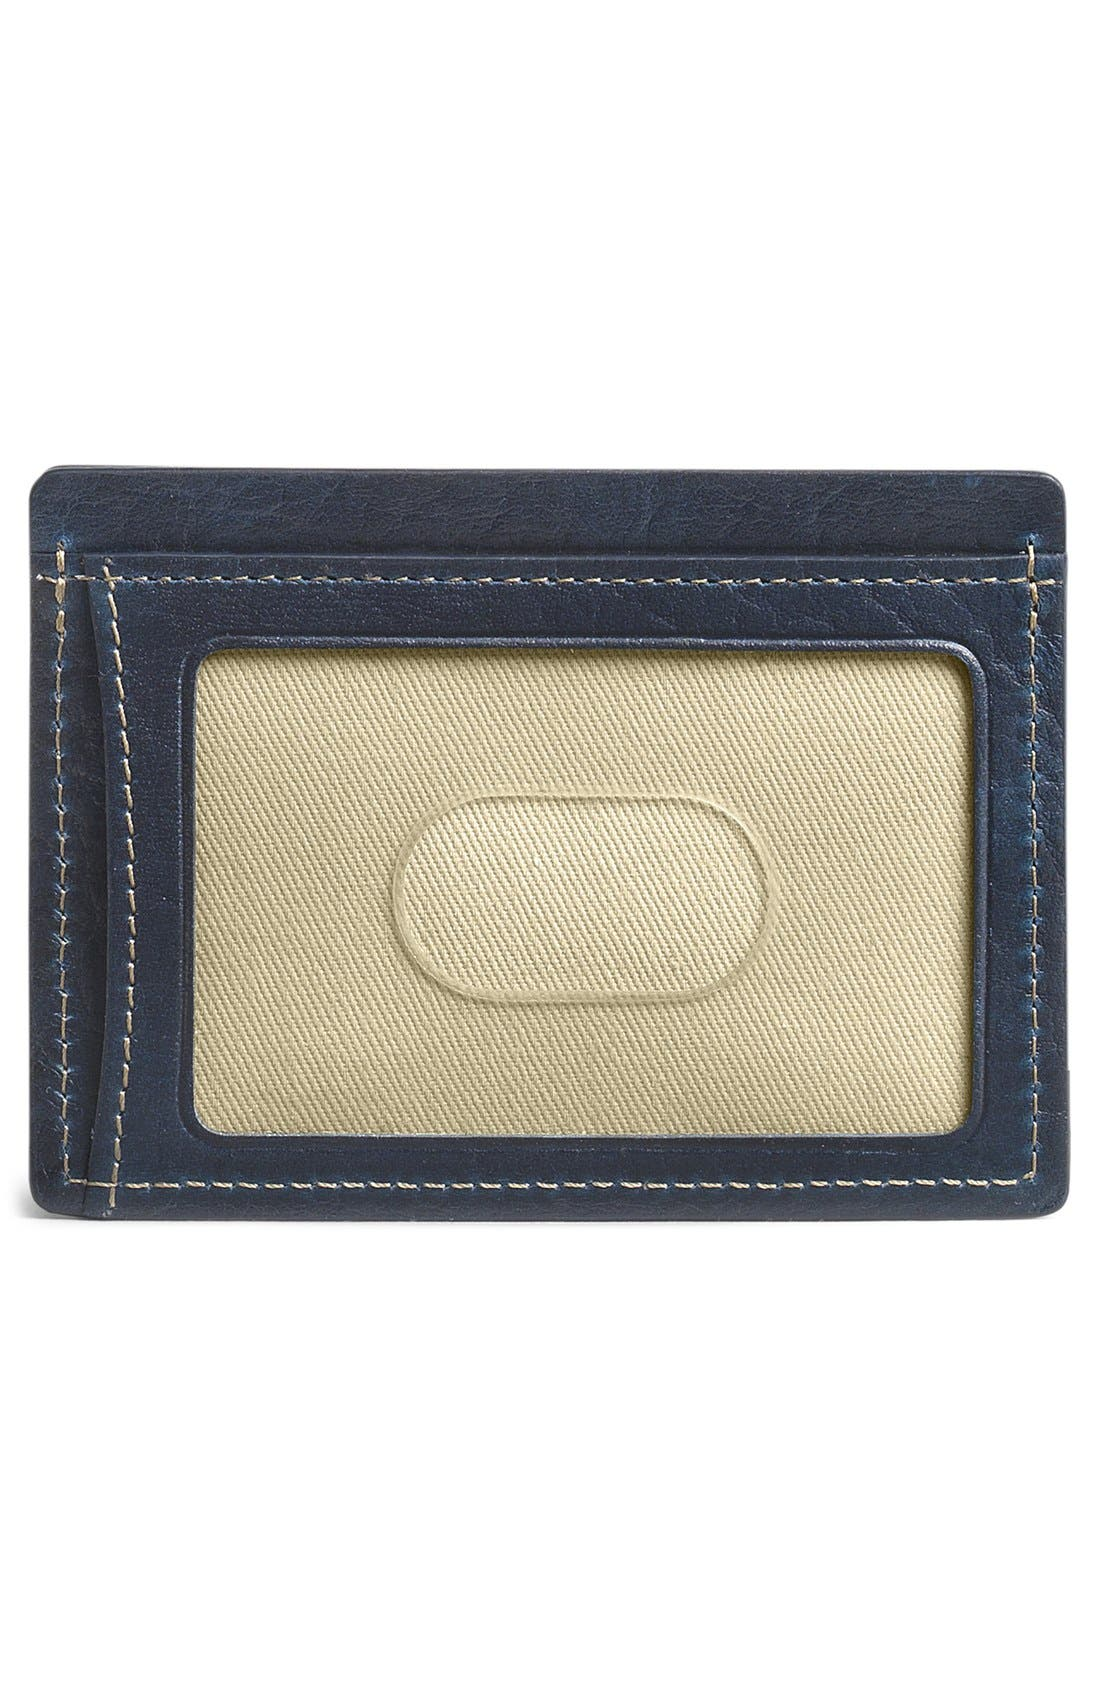 'Jackson' Leather Card Case,                             Alternate thumbnail 2, color,                             400